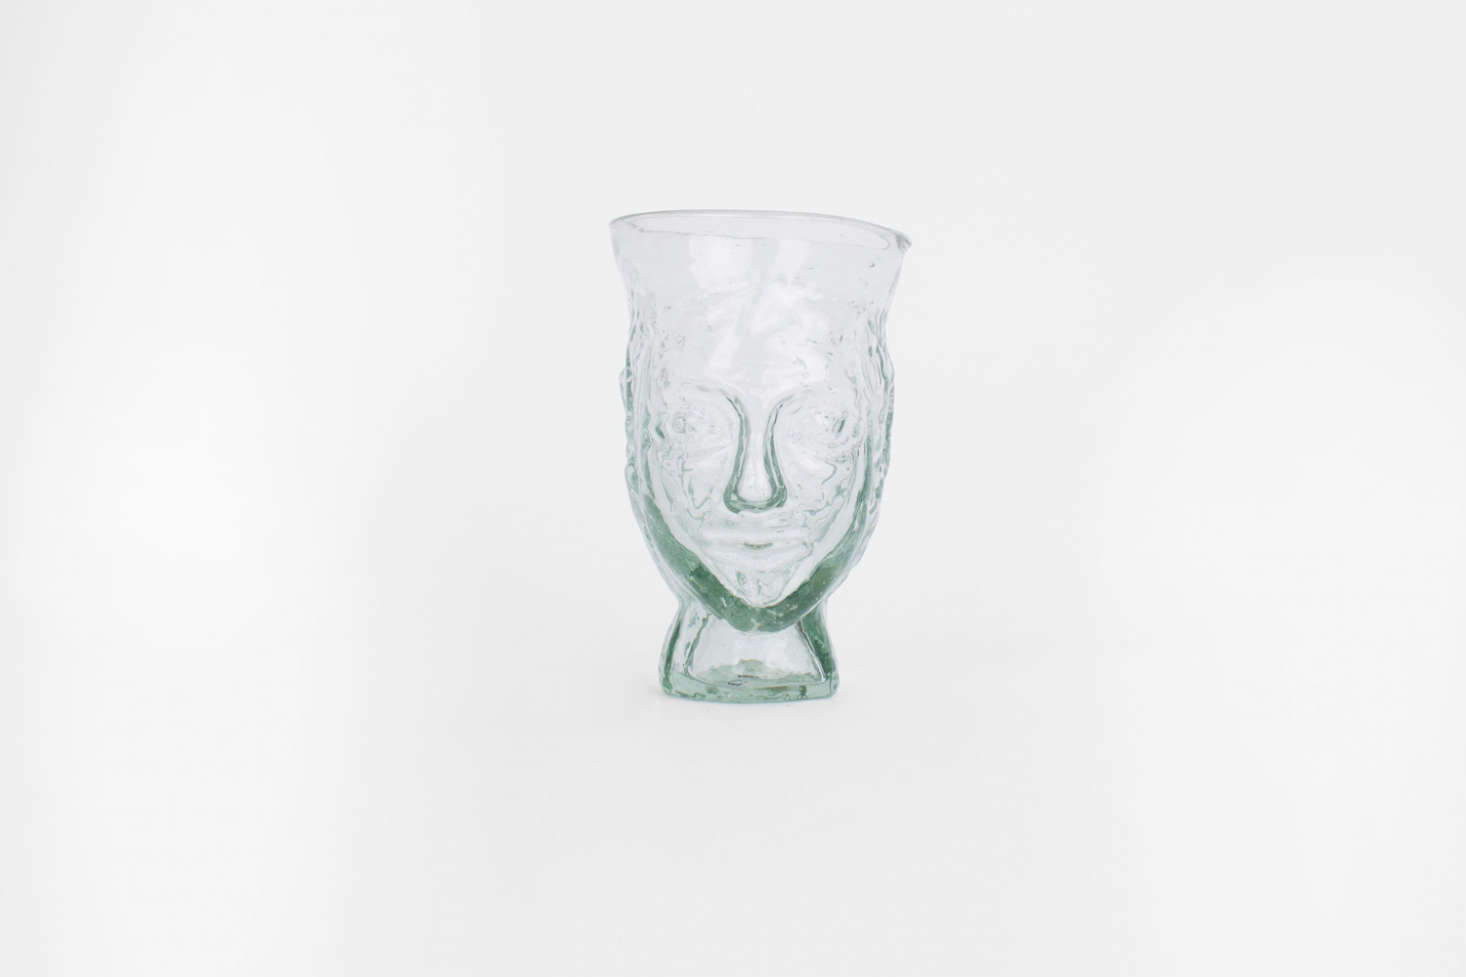 Alexa likes La Soufflerie'stete glassware for its ghostly similarities to death masks; theTete Drinking Glassis €29 from La Soufflerie. (For more selections, seeObject of Desire: La Soufflerie Tete Vases.)